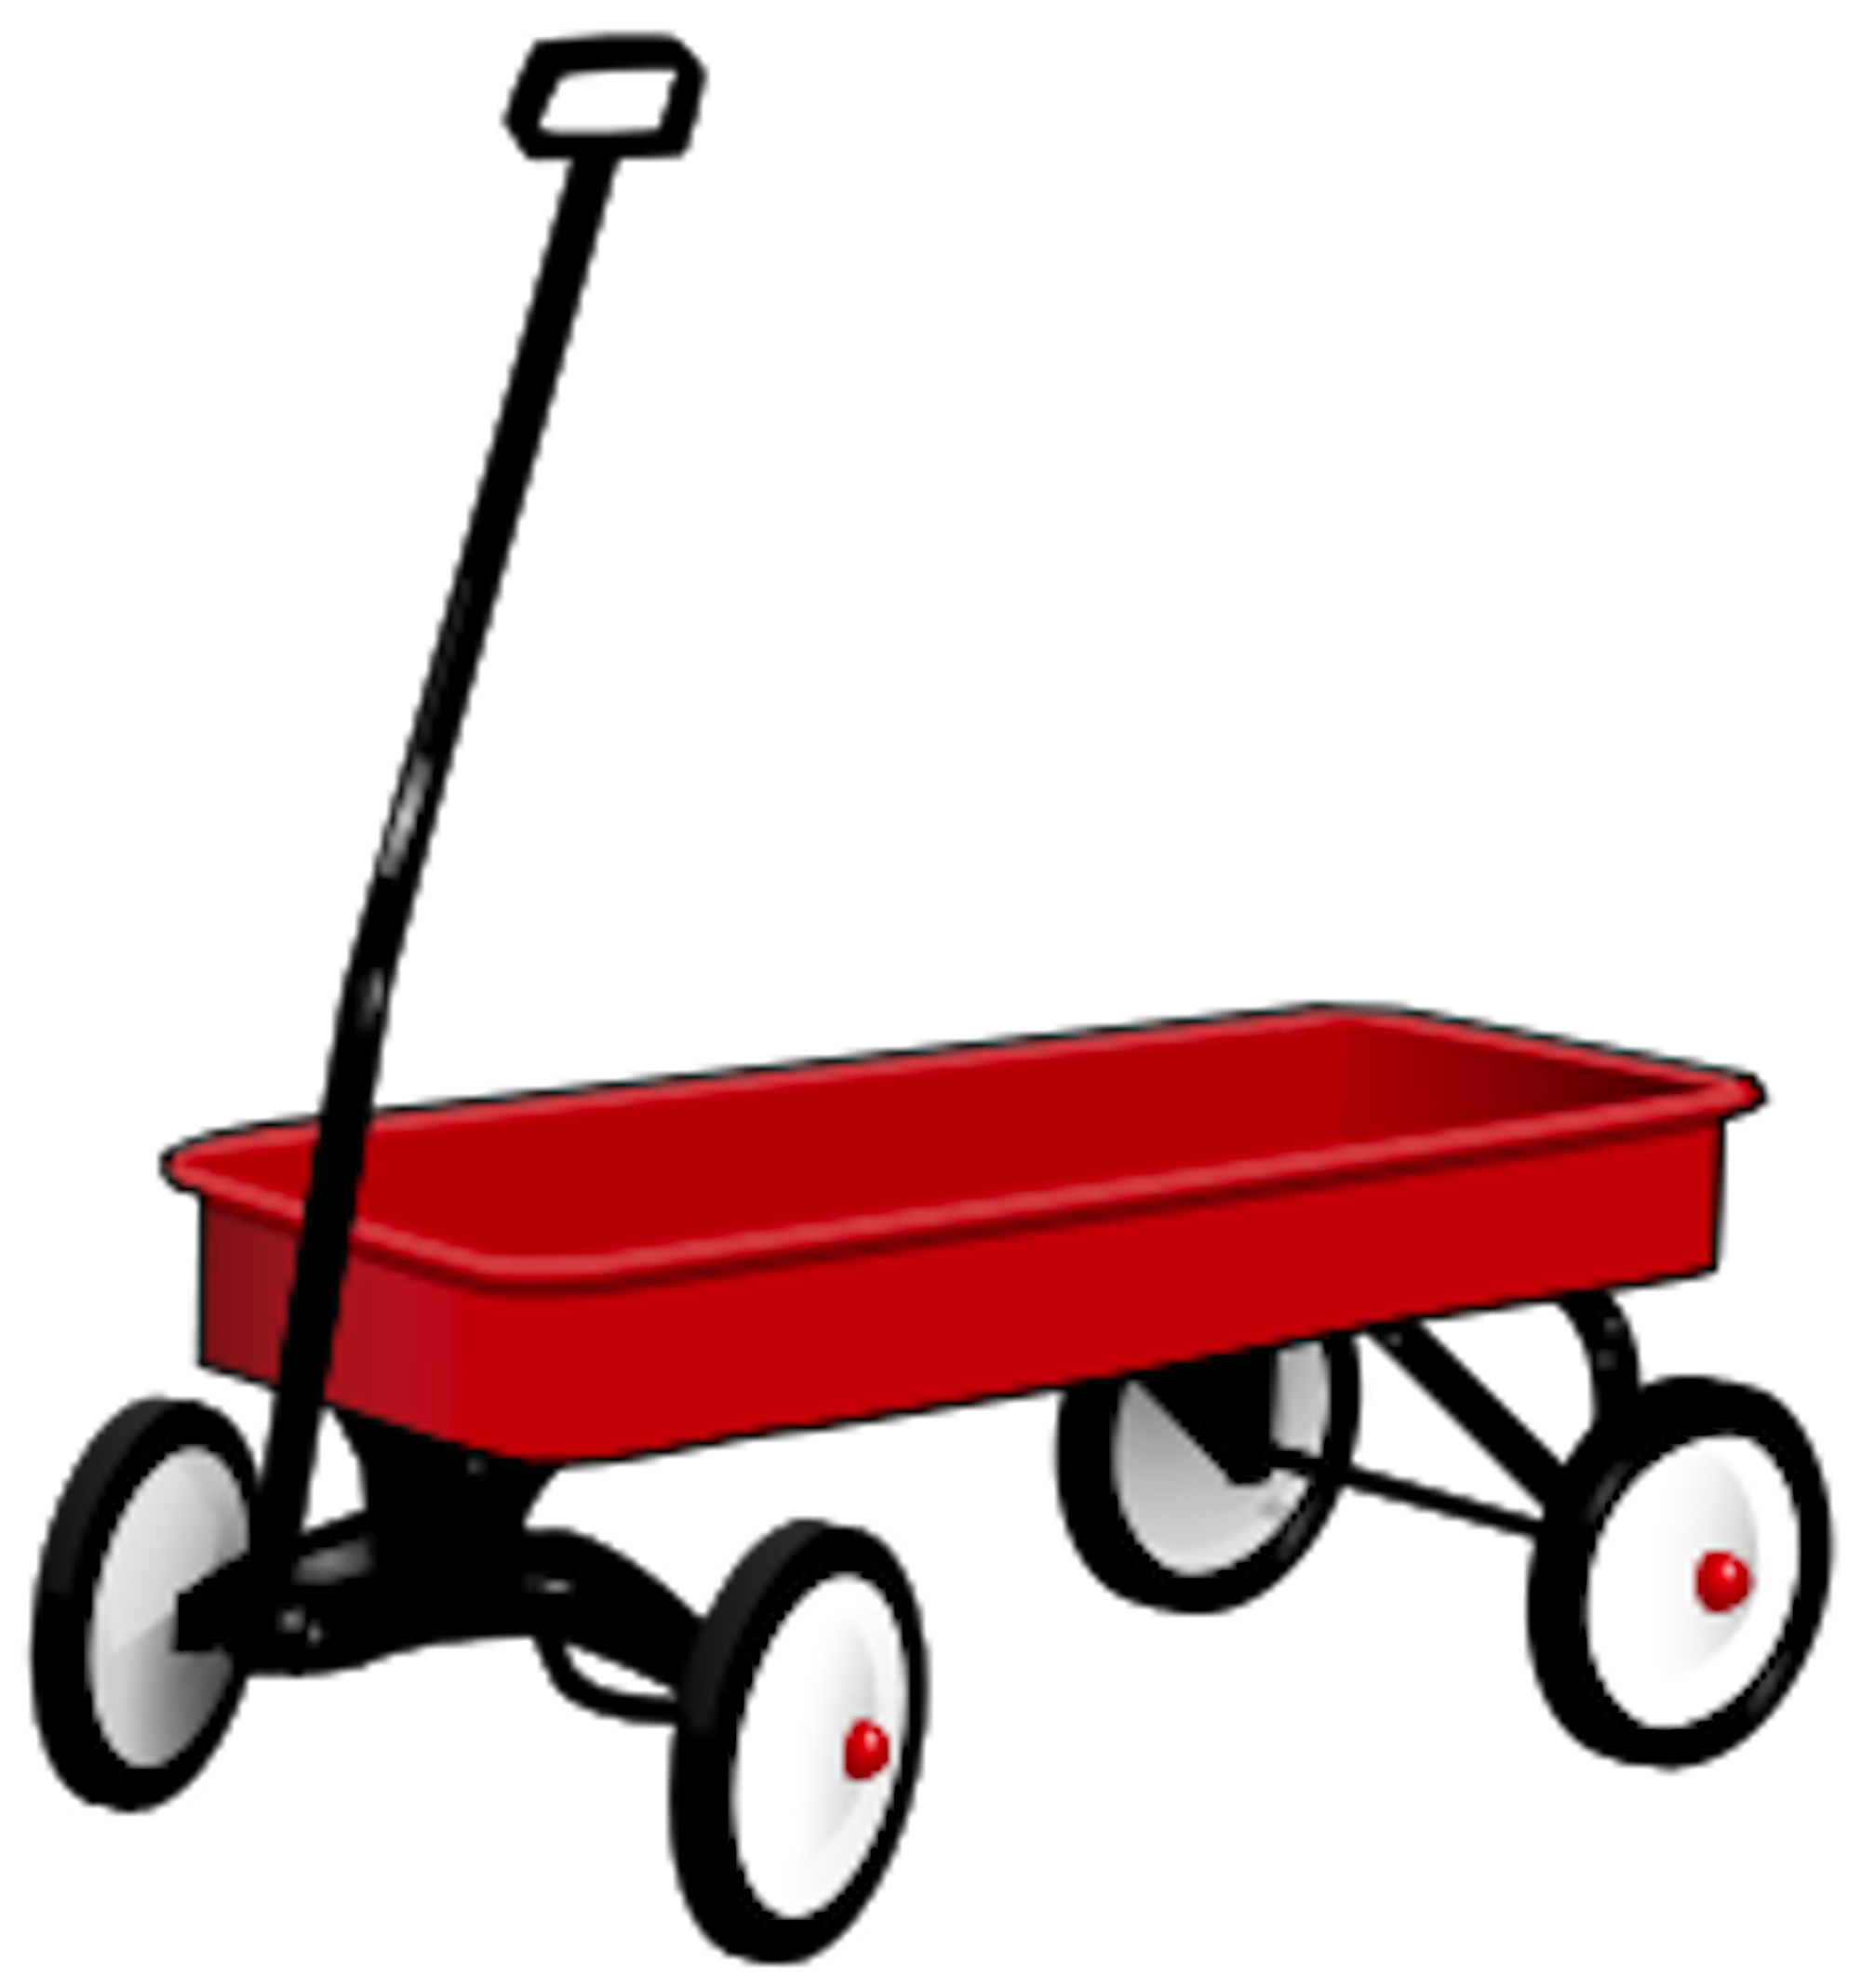 ... Red Wagon Pictures - ClipArt Best ..-... Red Wagon Pictures - ClipArt Best ...-10